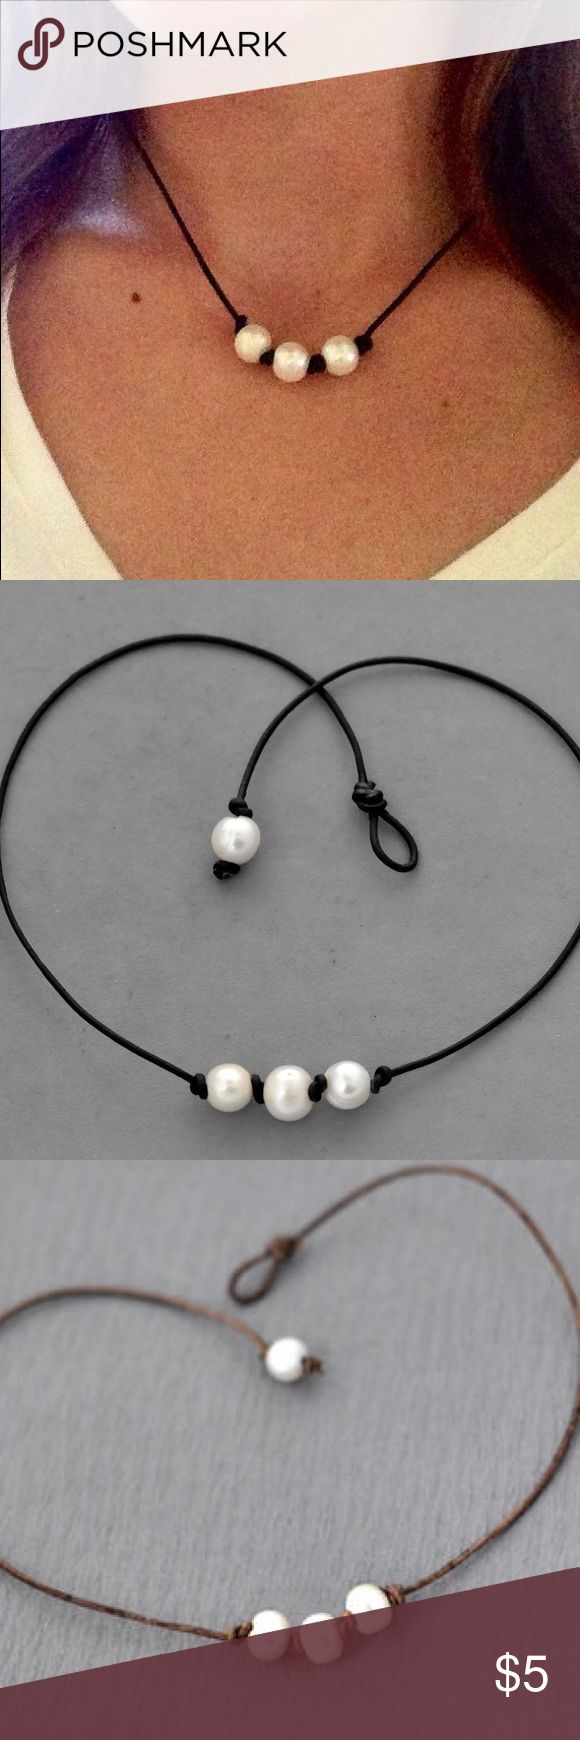 Boho Triple Pearl Leather Necklace Nwt